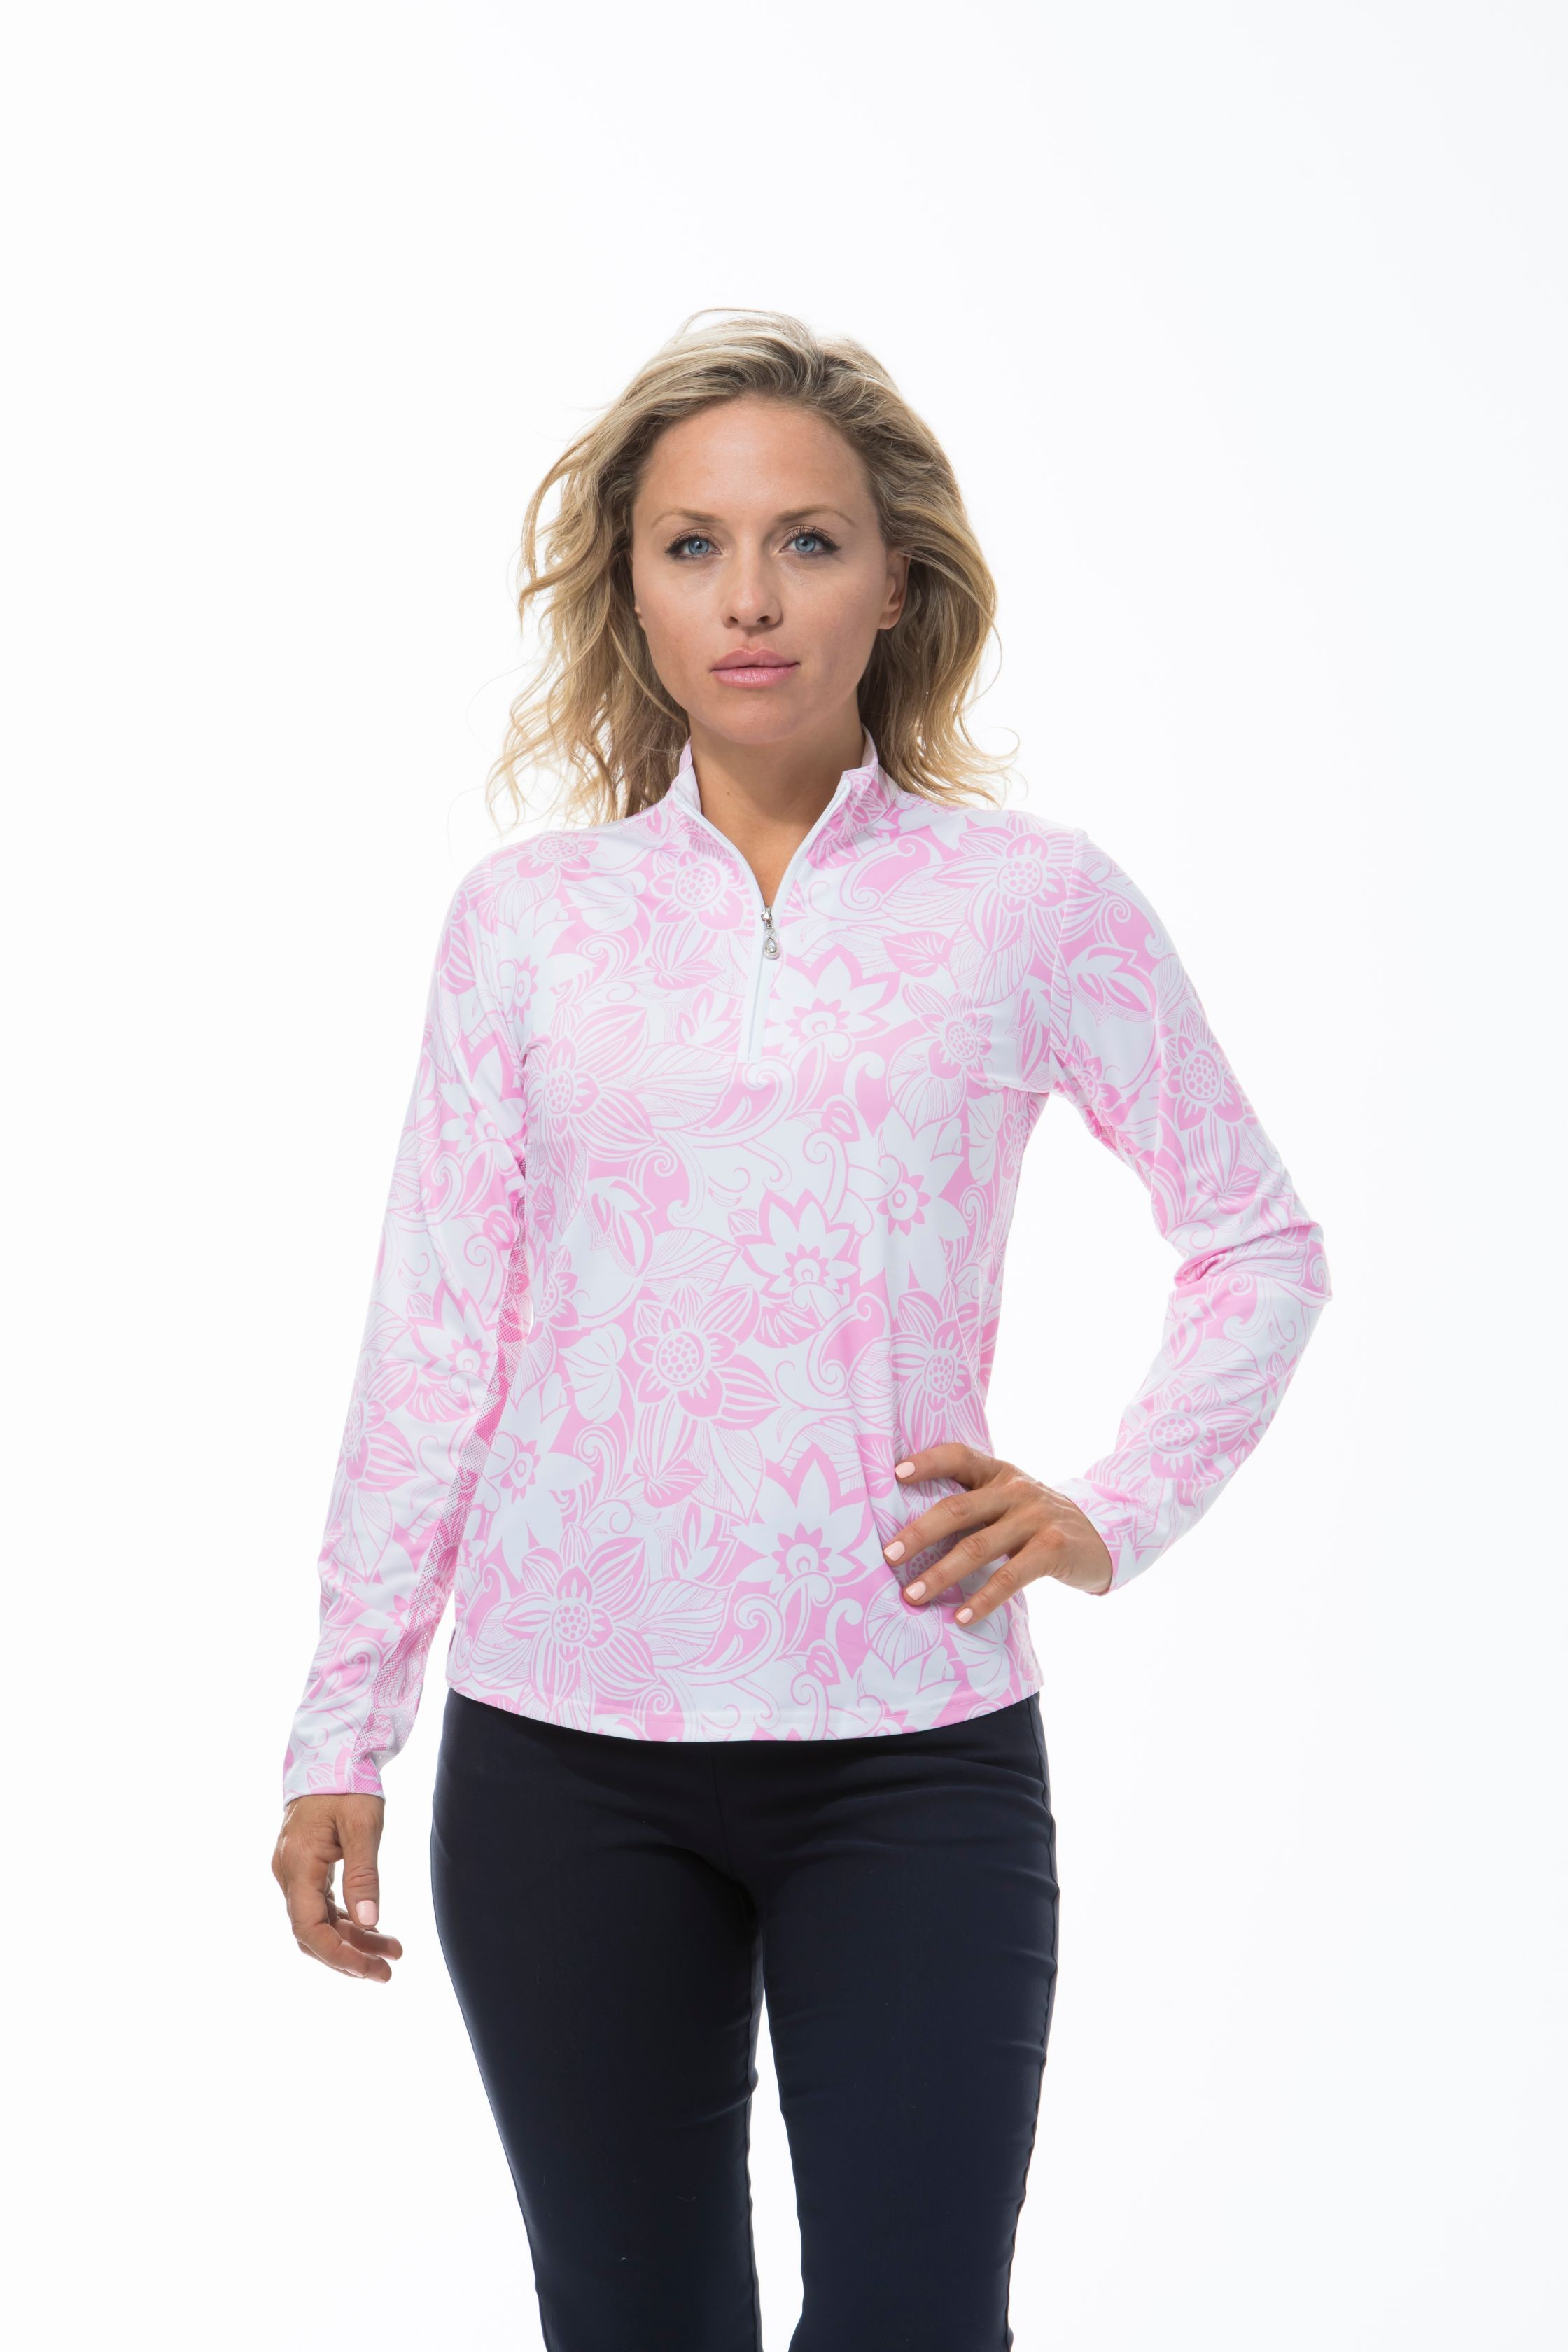 900463 - SolCool Zip Mock. Kona Coast. Pink